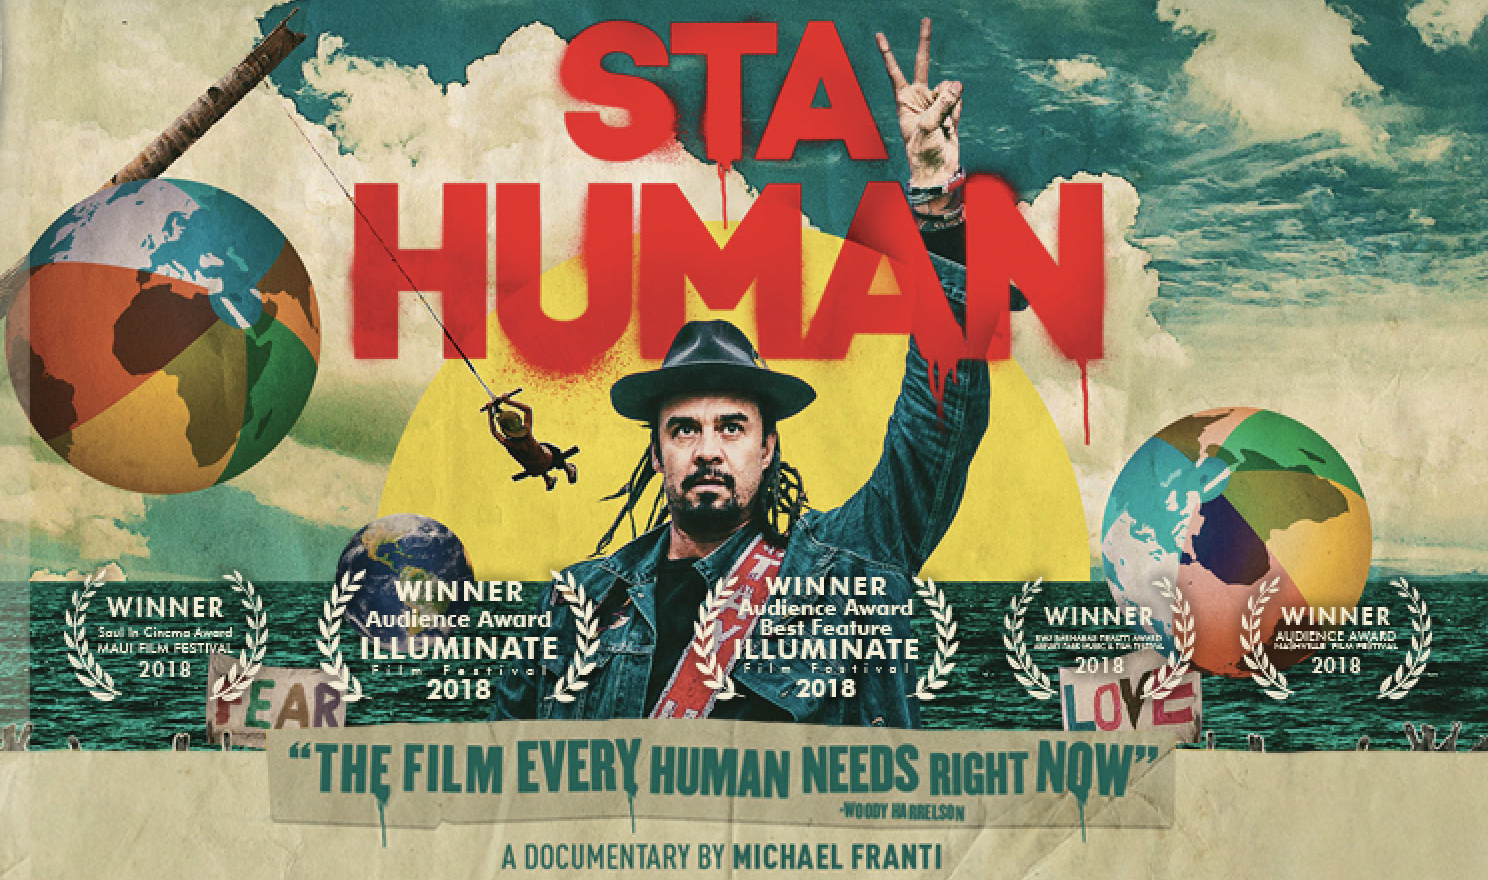 YouTube World Premiere of Stay Human, An Award Winning Film By Michael Franti